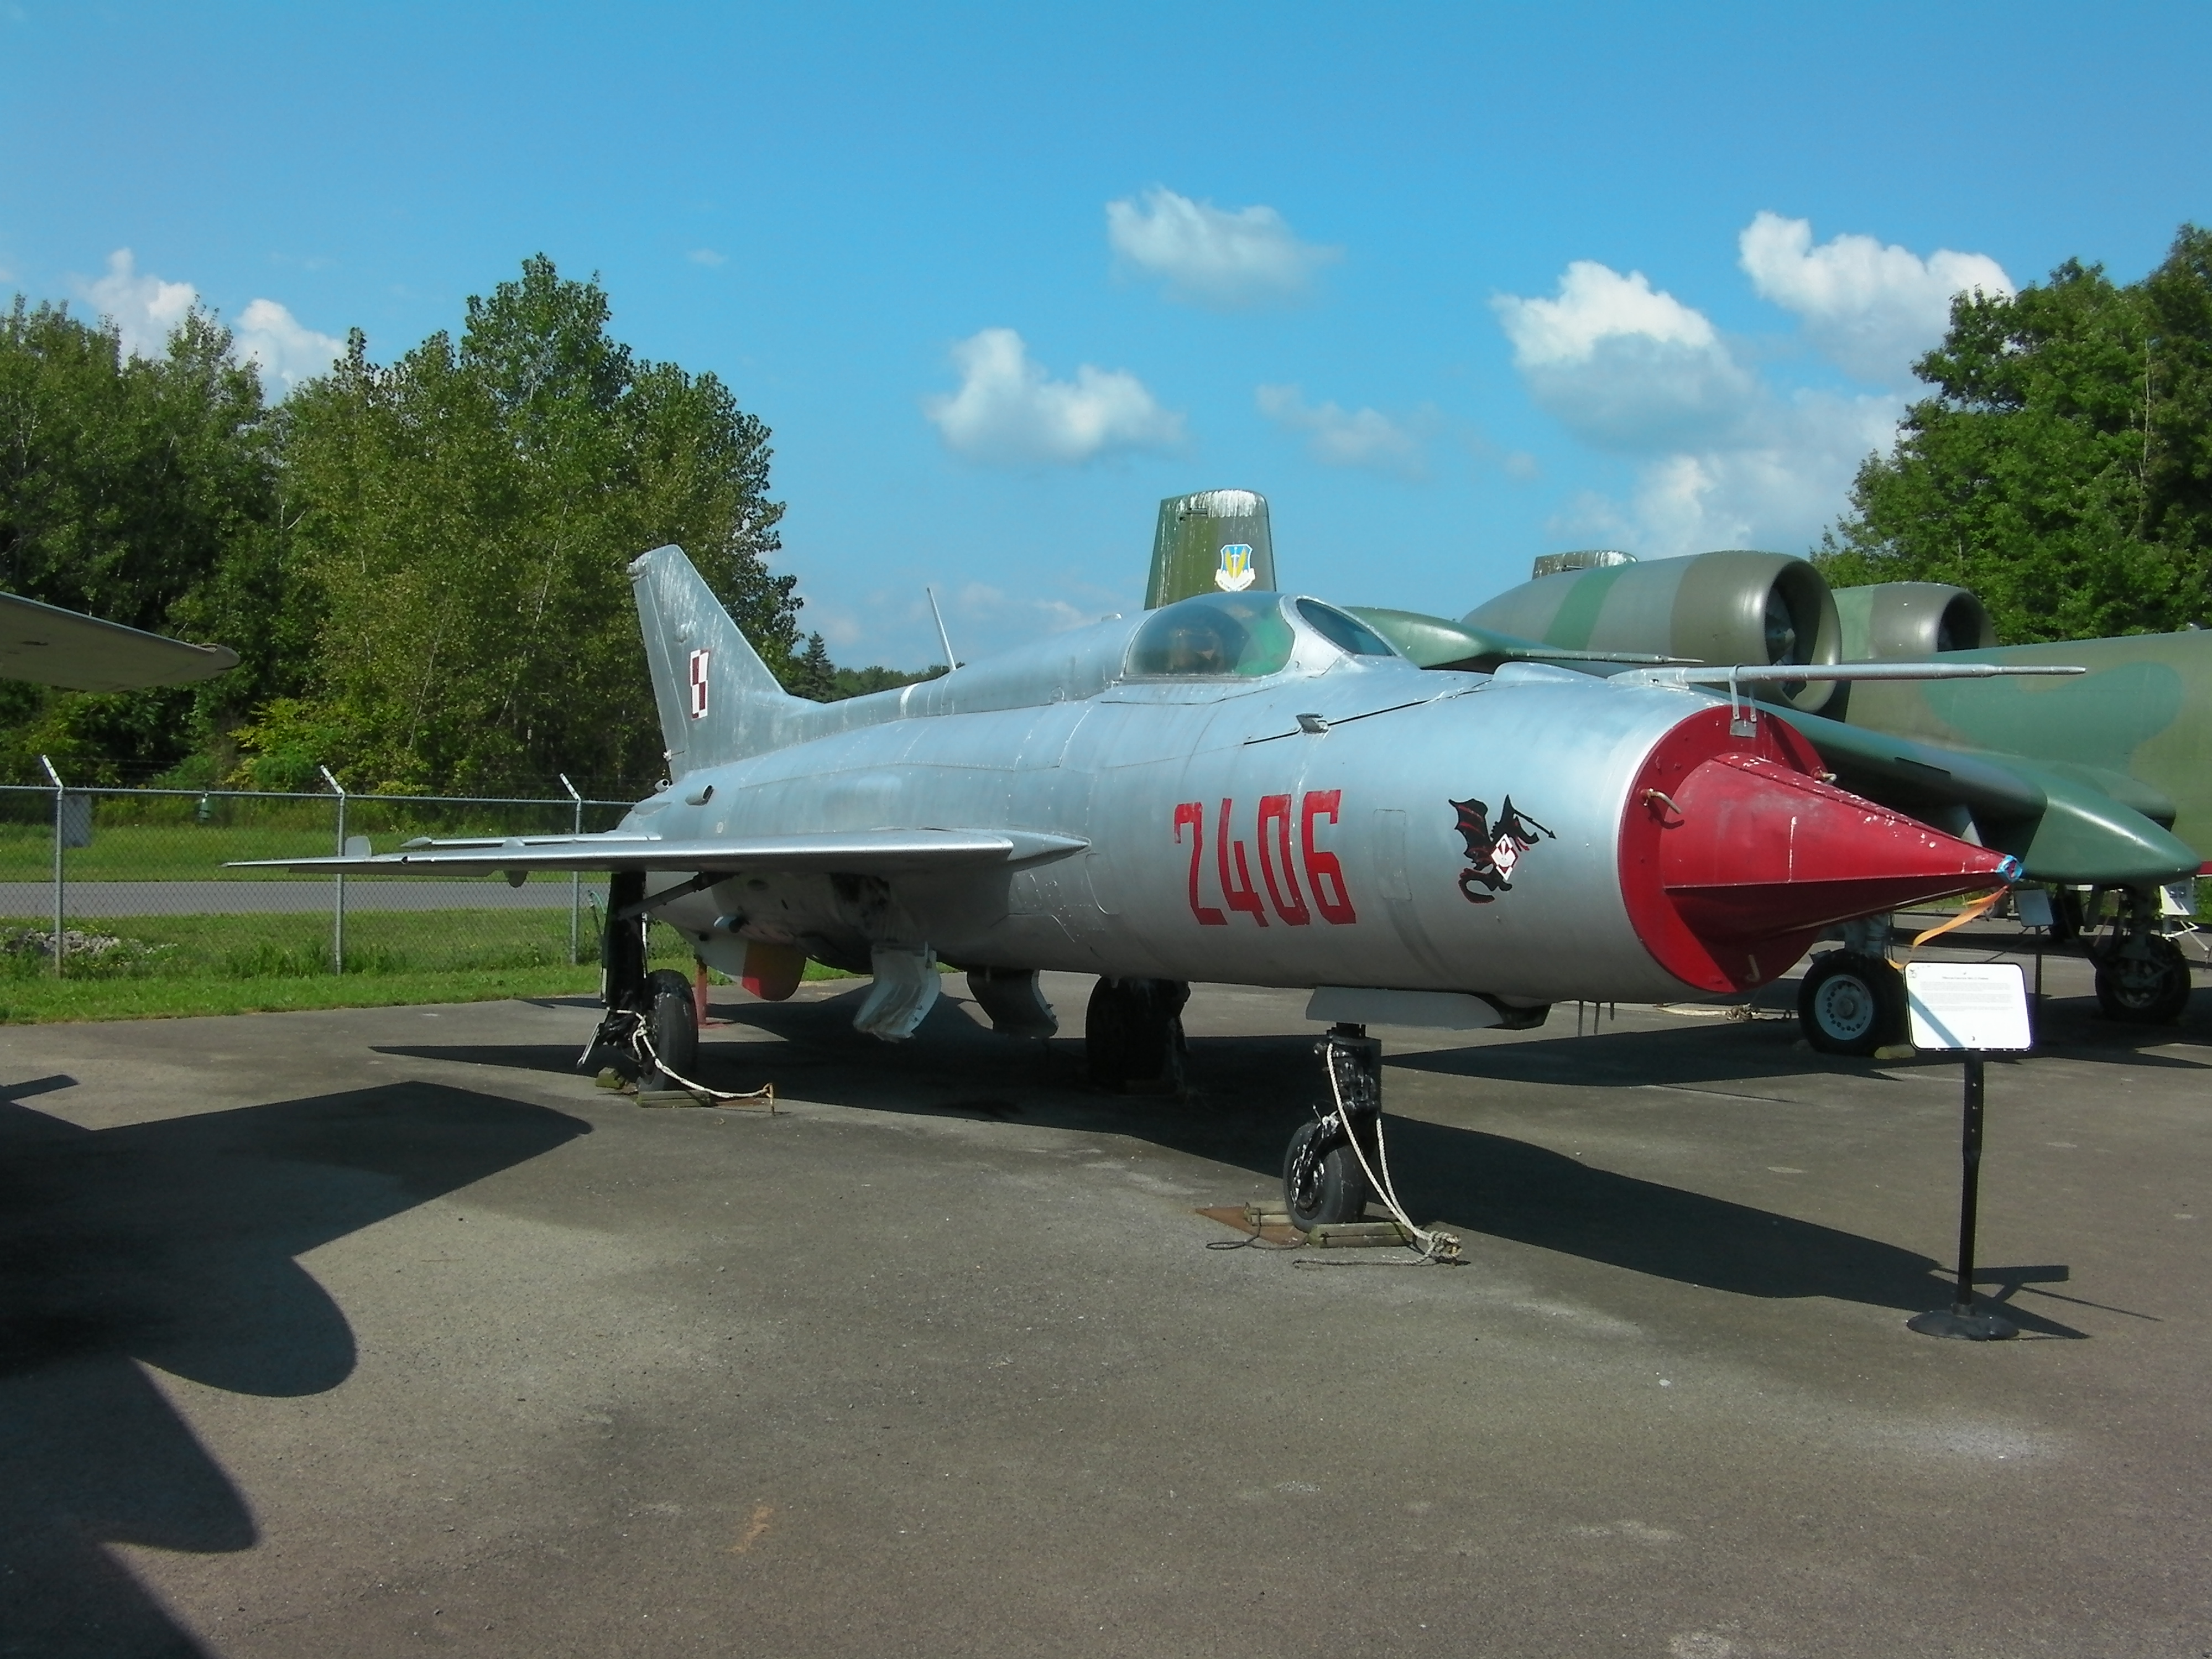 Mikoyan-Gurevich MiG-21 Fishbed